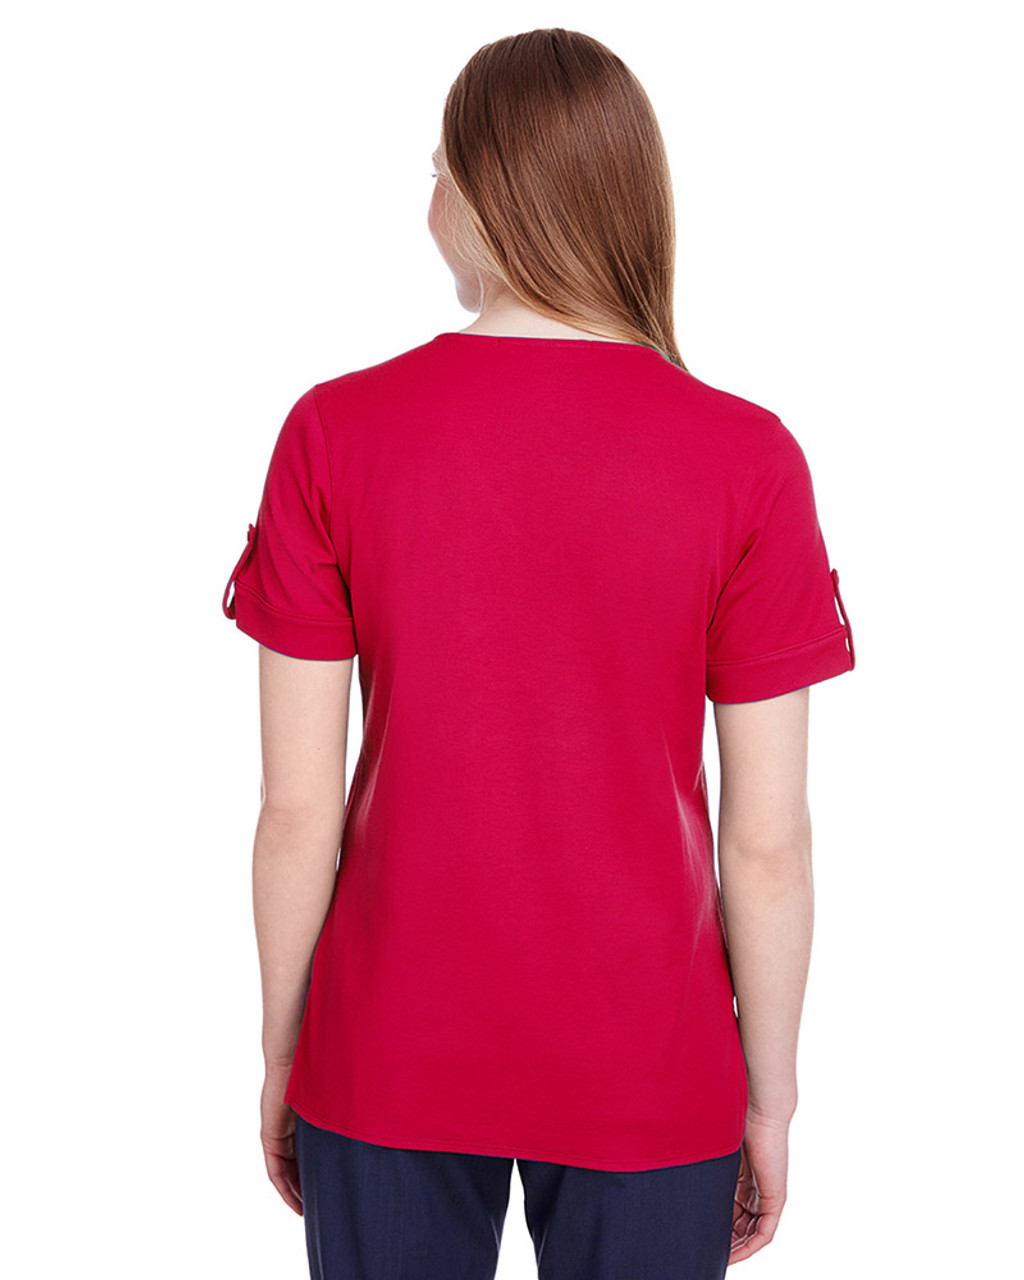 Red - back, DG20WB Devon & Jones Ladies' CrownLux Performance™ Plaited Rolled-Sleeve Top | Blankclothing.ca